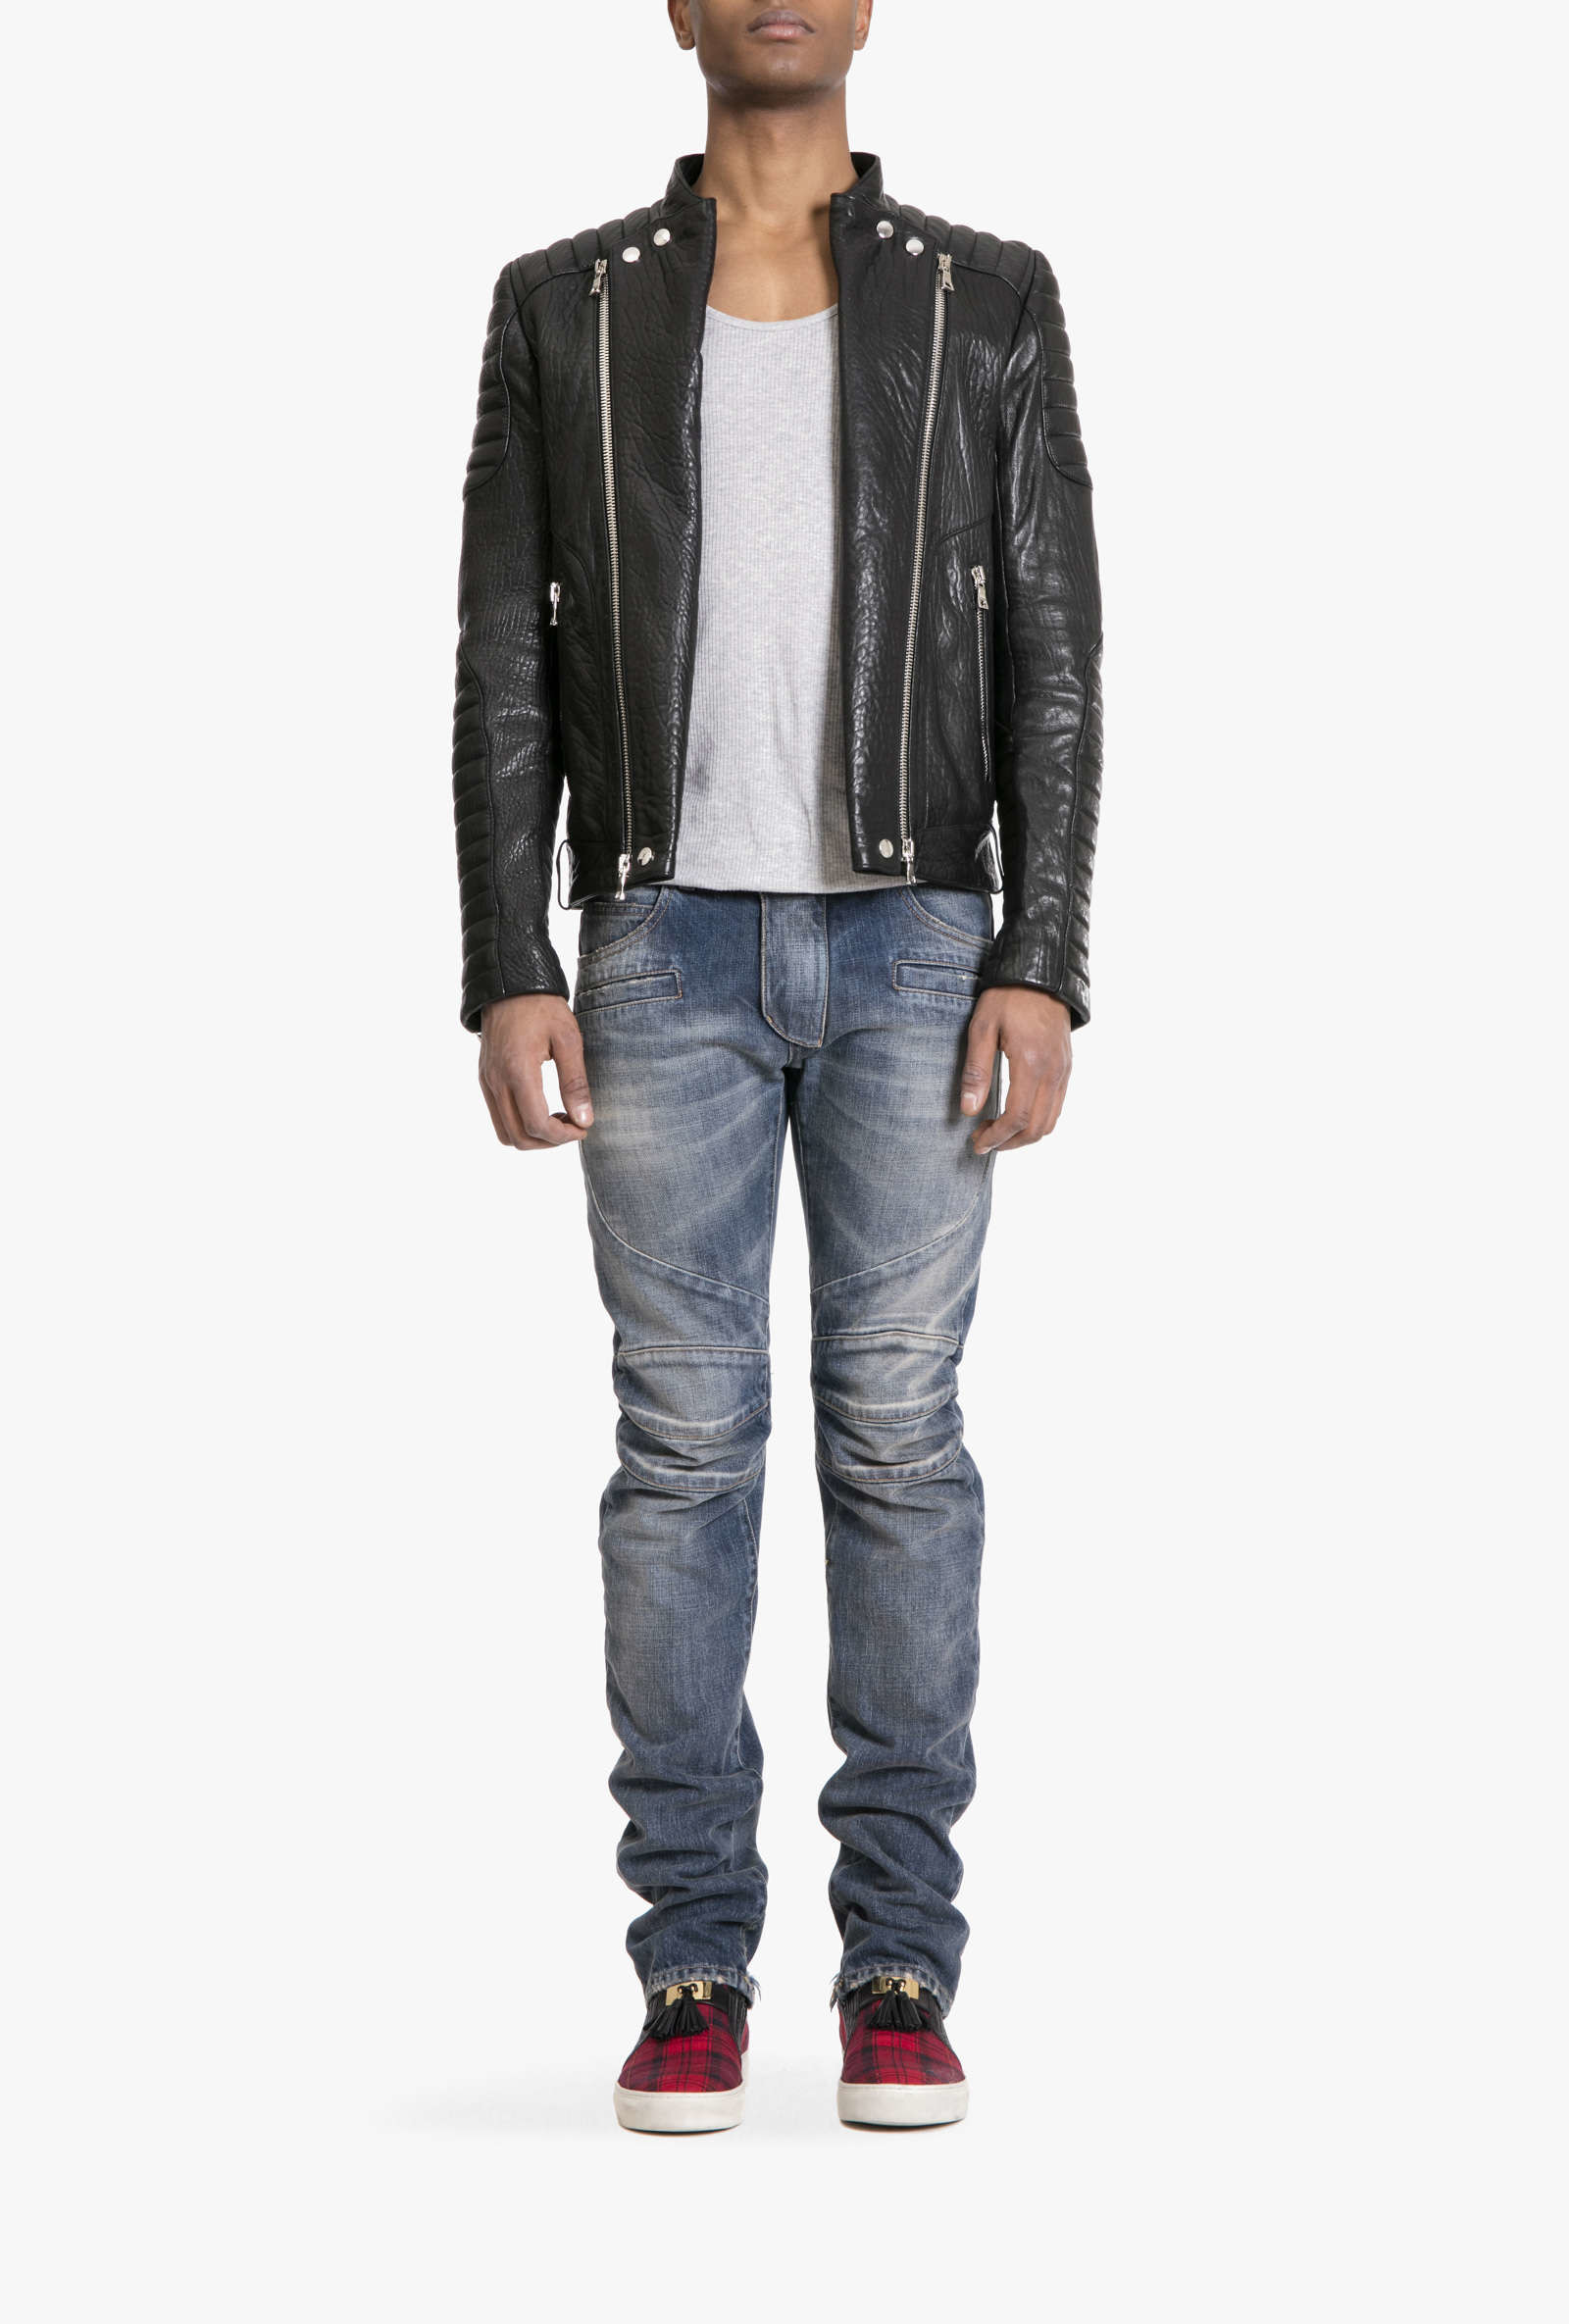 Balmain Leather Jacket | Balmain Sandals | Balmain Leather Jacket Men